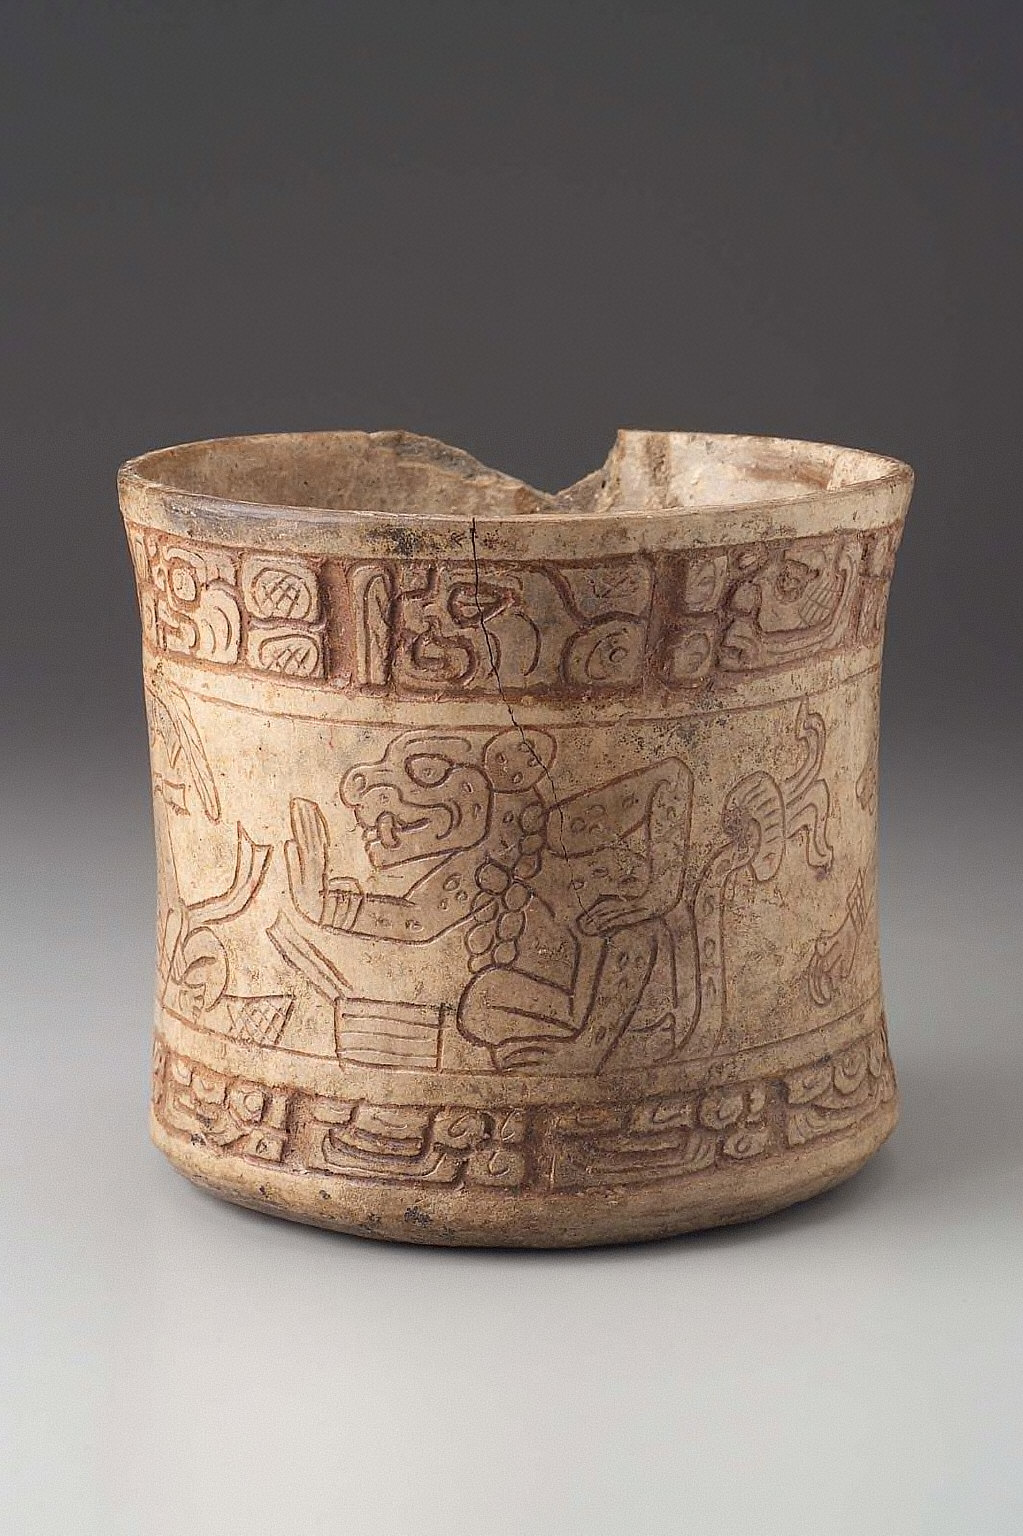 Incised vessel with animal figures